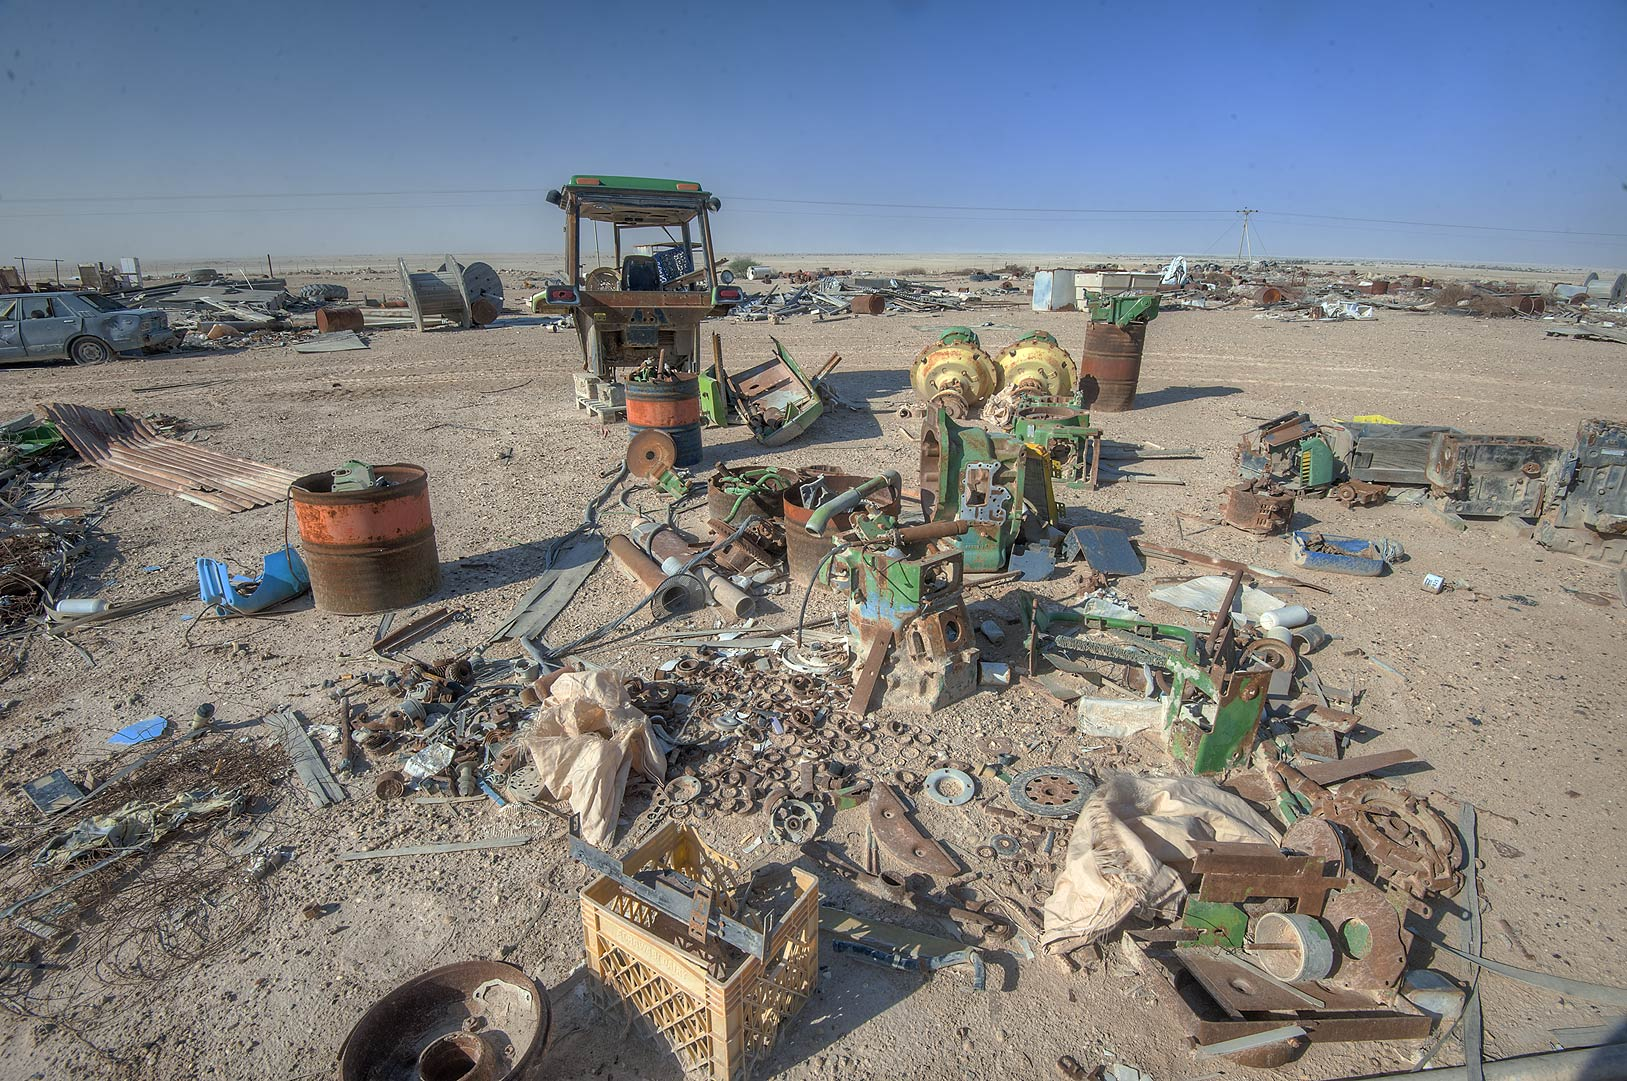 Spare parts for agricultural equipment on Green...in Irkhaya (Irkaya) Farms. Qatar